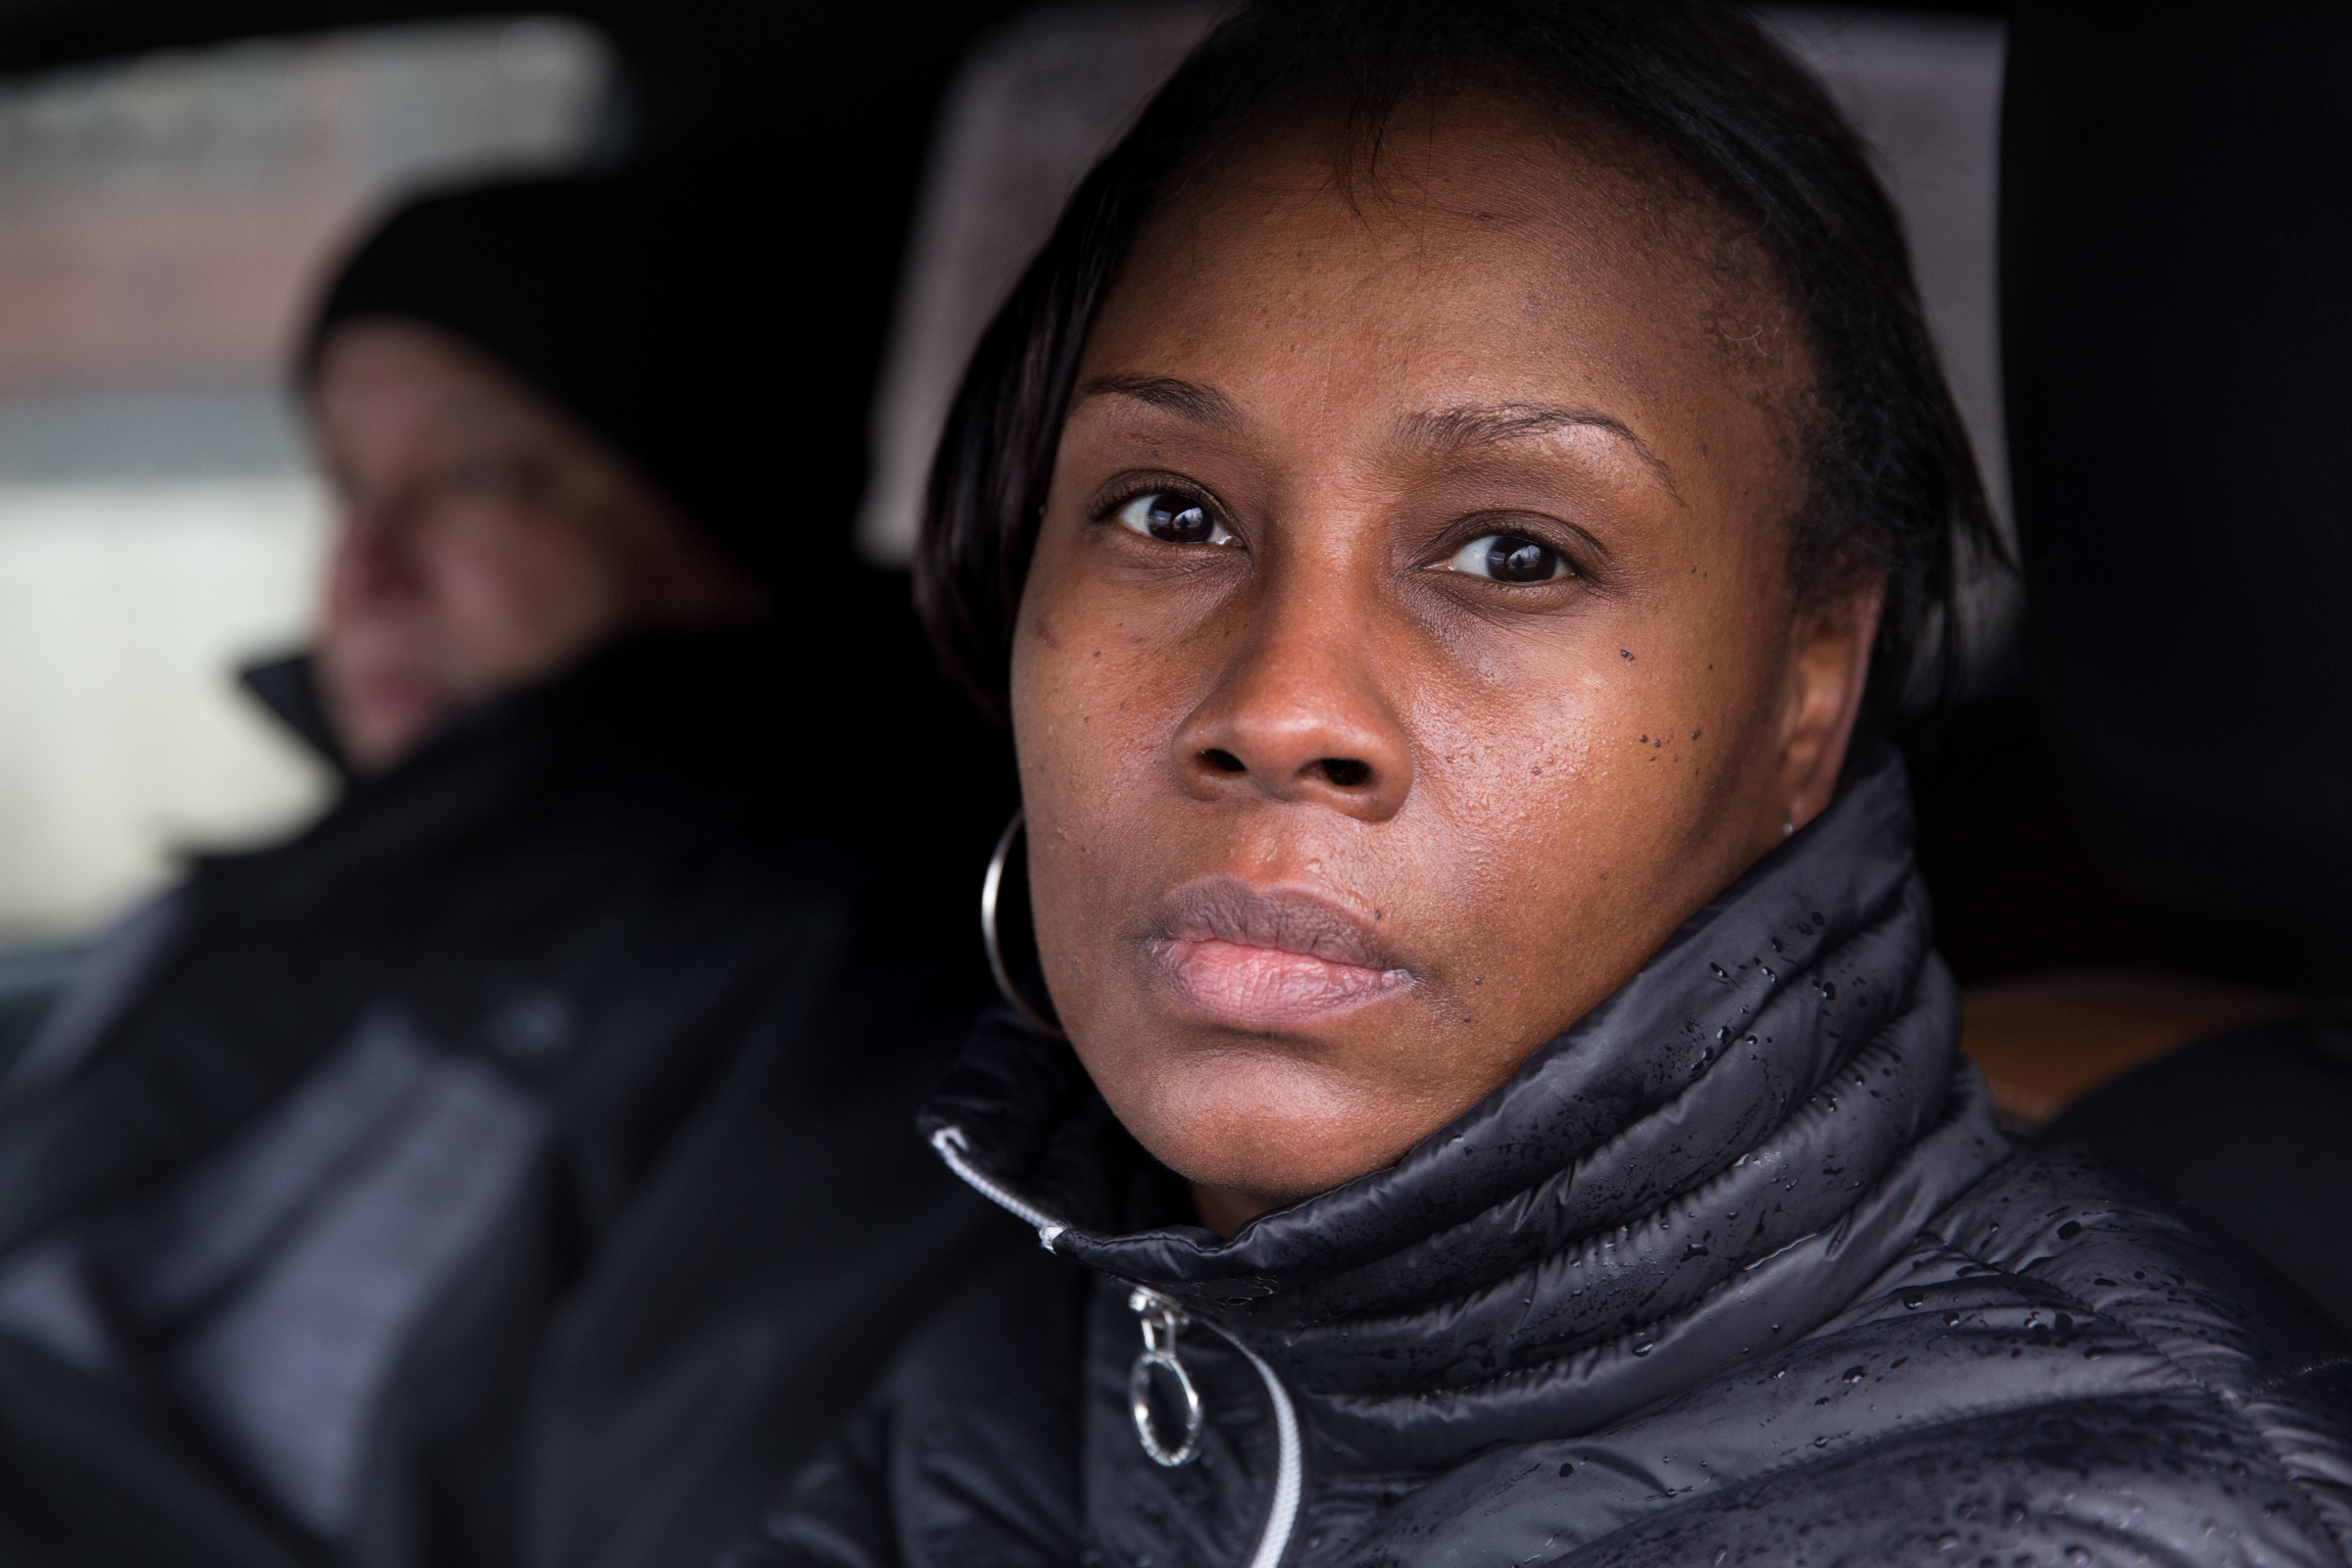 Mykia Capers shown here in her car near the corner of West Glenwood Avenue and North 29th Street, in Philadelphia, Friday, March 2, 2018. Capers has posted a billboard seeking information about the murder of her son. JESSICA GRIFFIN / Staff Photographer